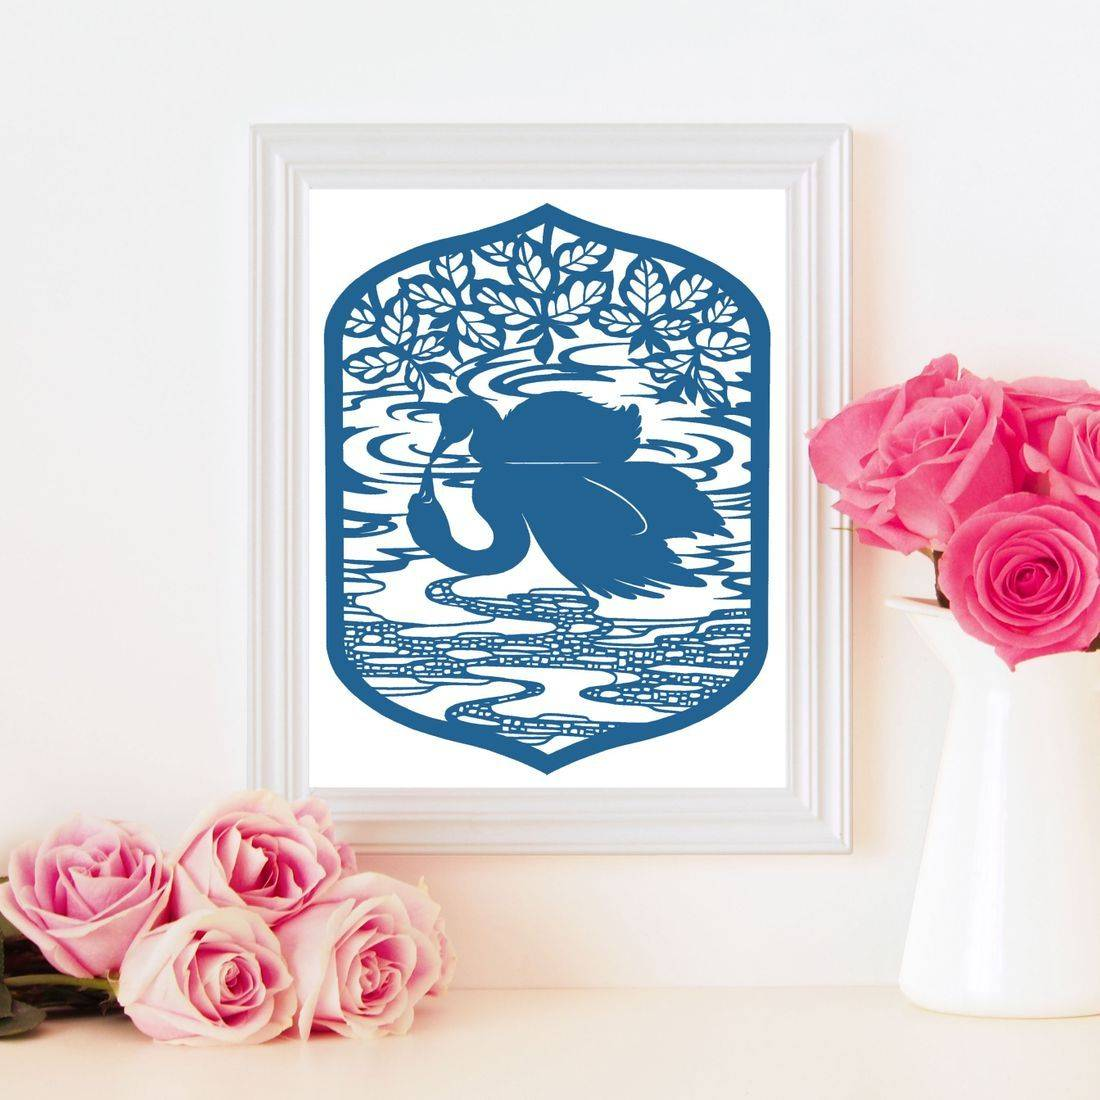 the ugly duckling, crafting template, svg, studio, jpeg, bramble crafts